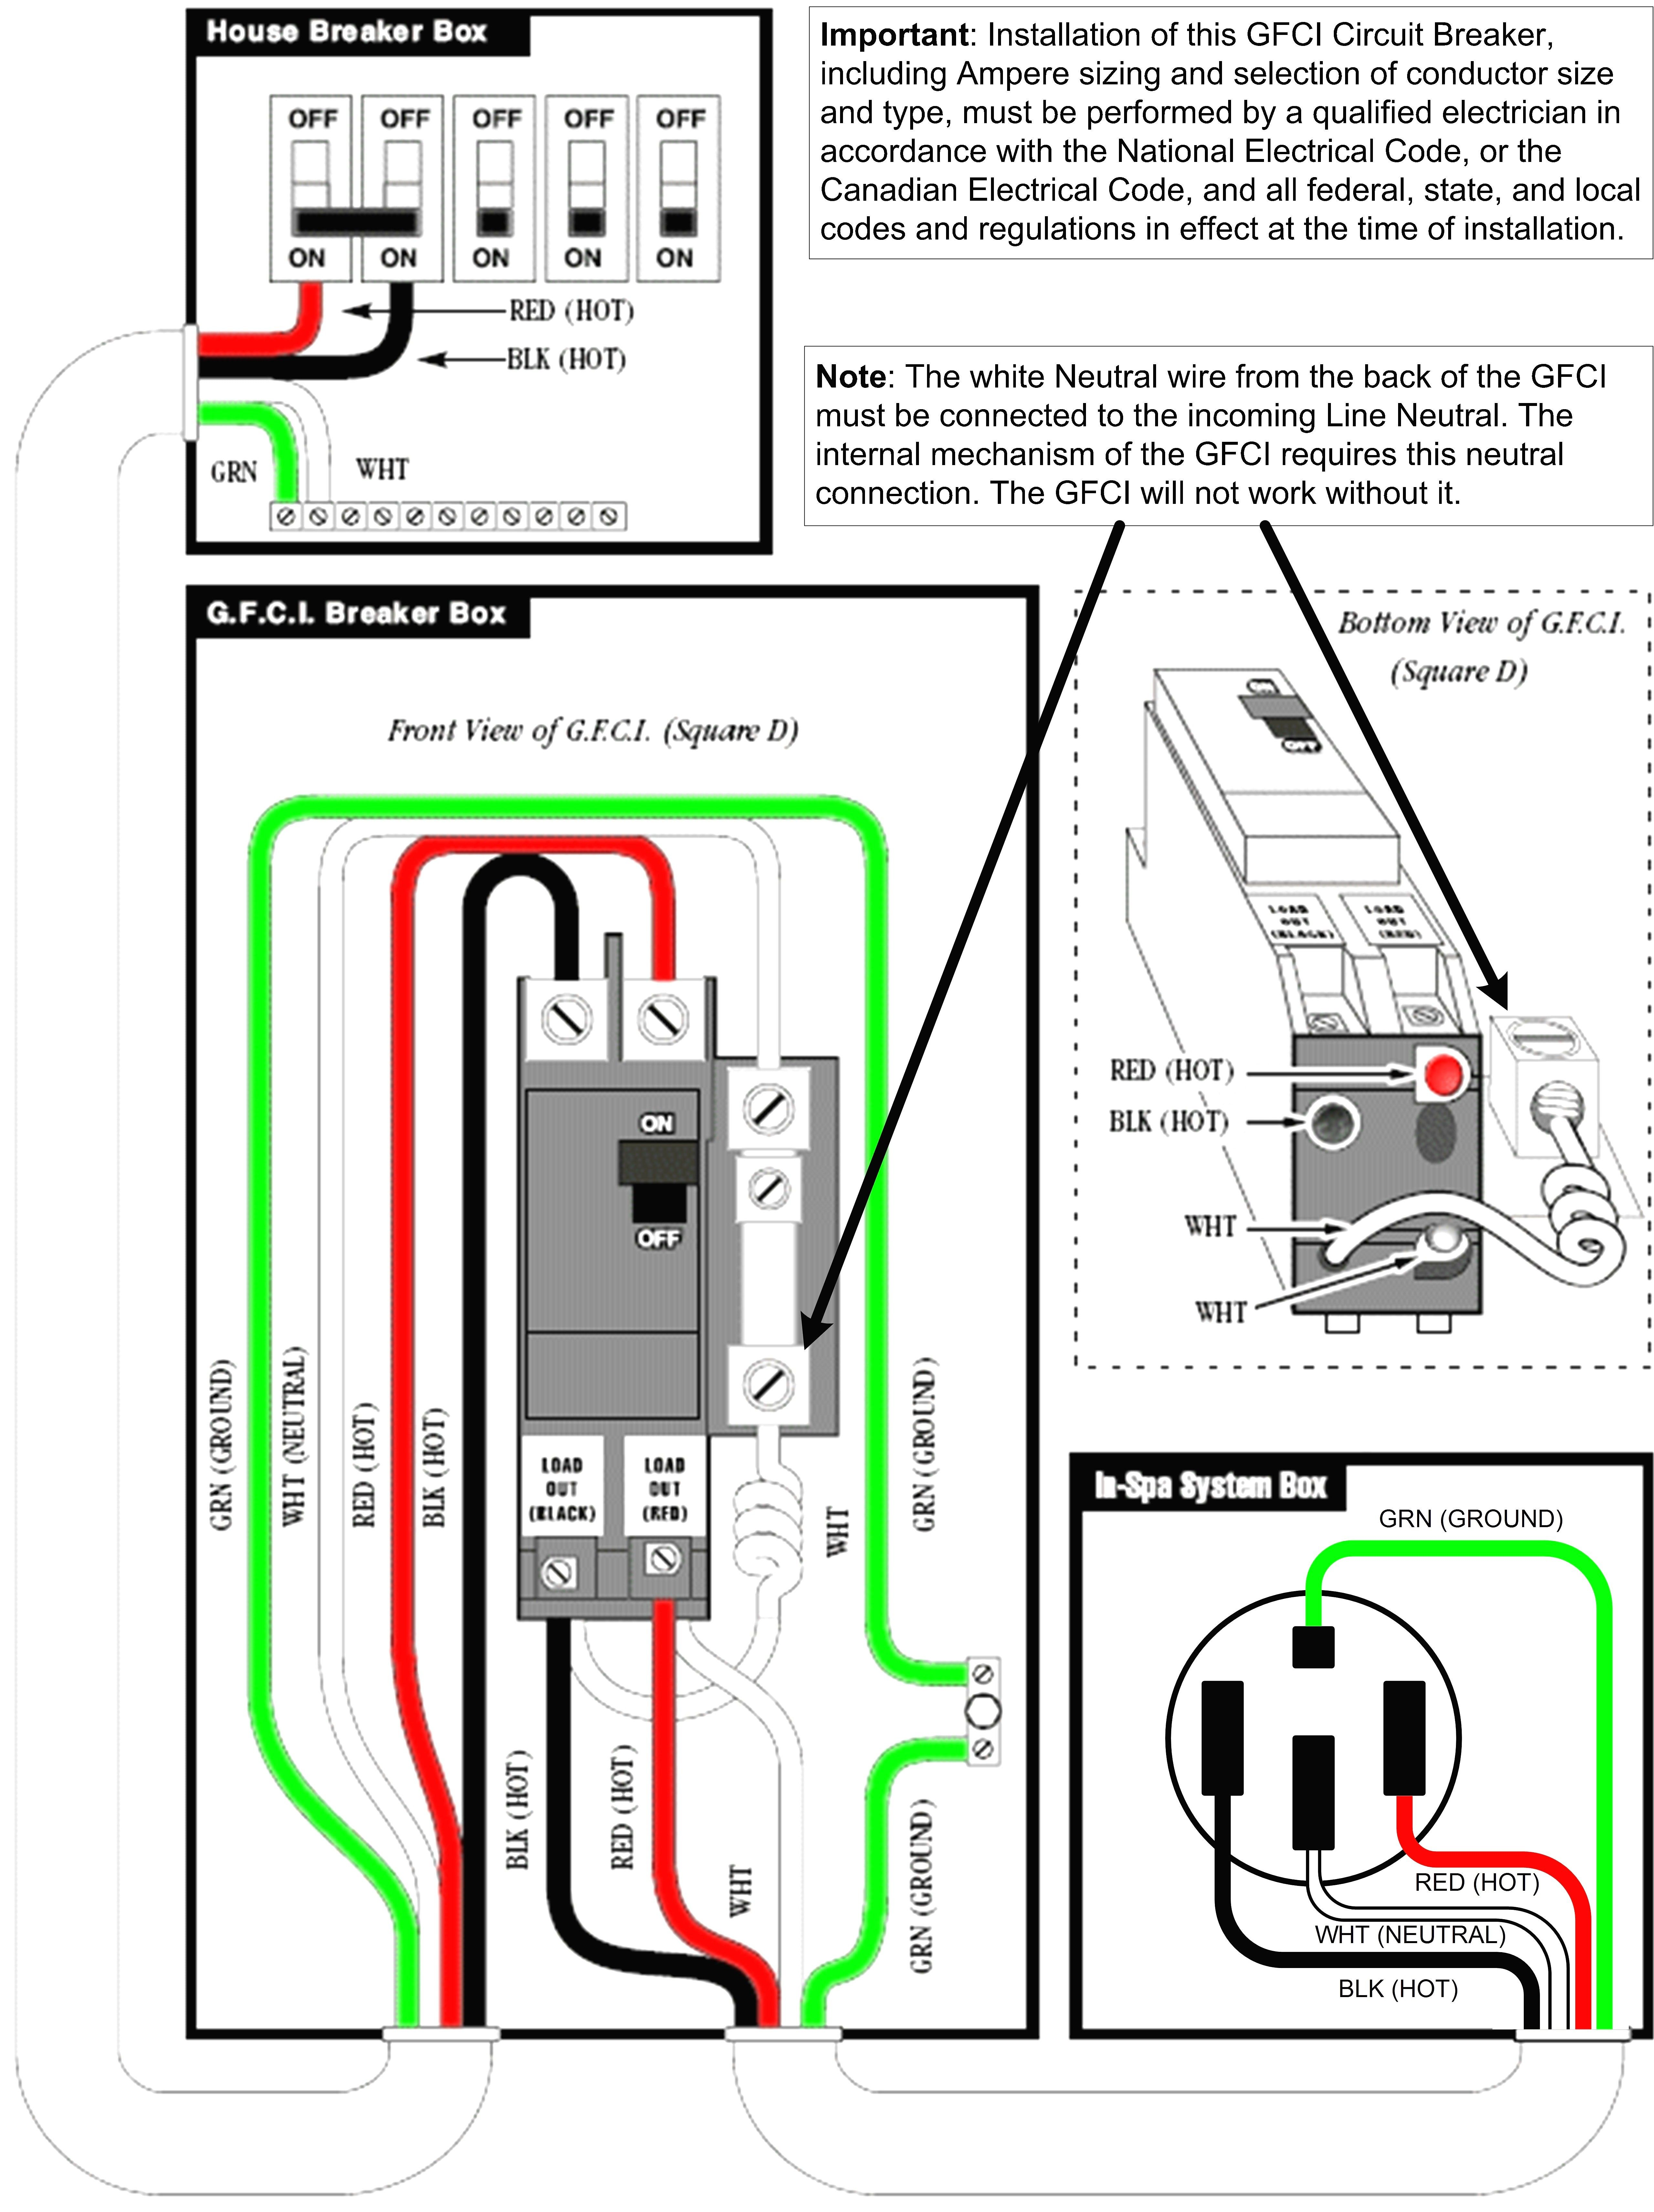 hight resolution of new gfci wiring diagram for hot tub diagram diagramsample diagramtemplate wiringdiagram